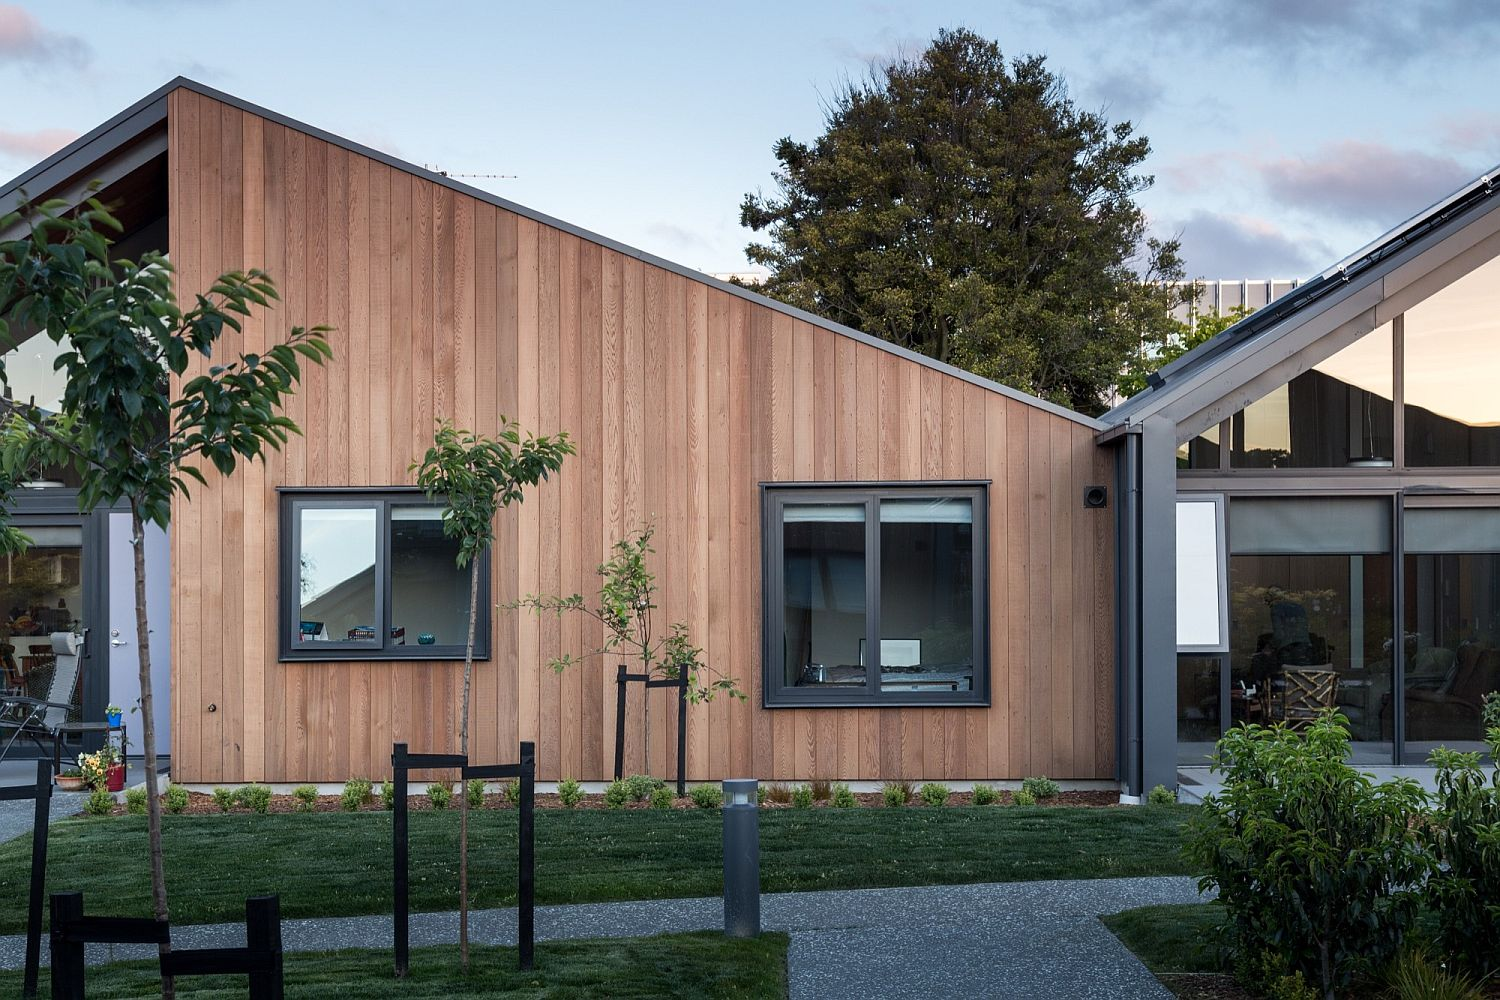 Wooden exterior and striking gabled frame of the Mary Potter Apartments